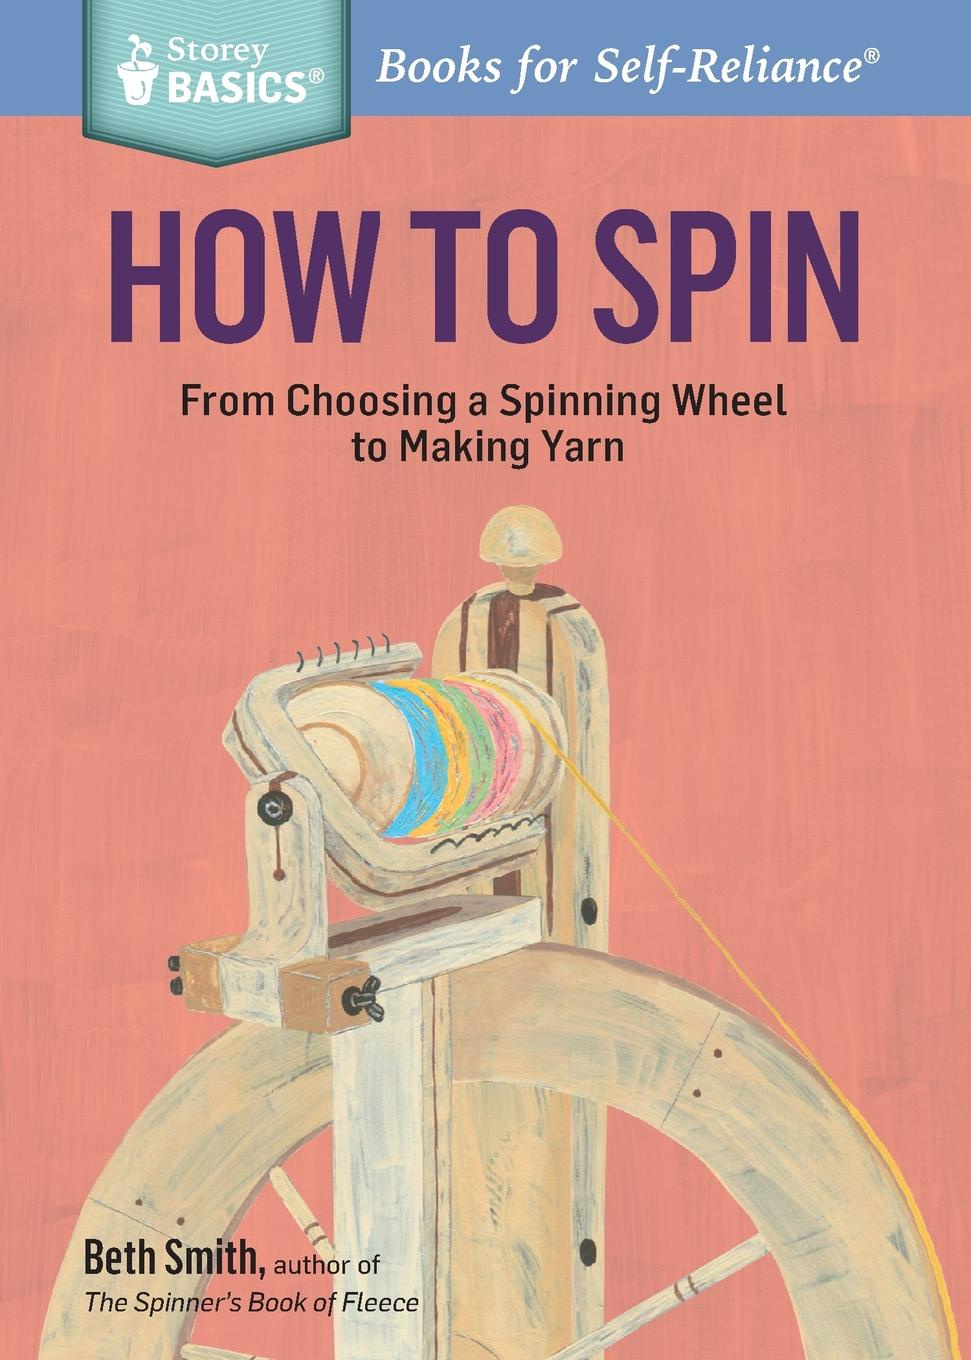 Фото - Beth Smith How to Spin. From Choosing a Spinning Wheel to Making Yarn. A Storey BASICS. Title mark kopecky managing manure how to store compost and use organic livestock wastes a storey basics title